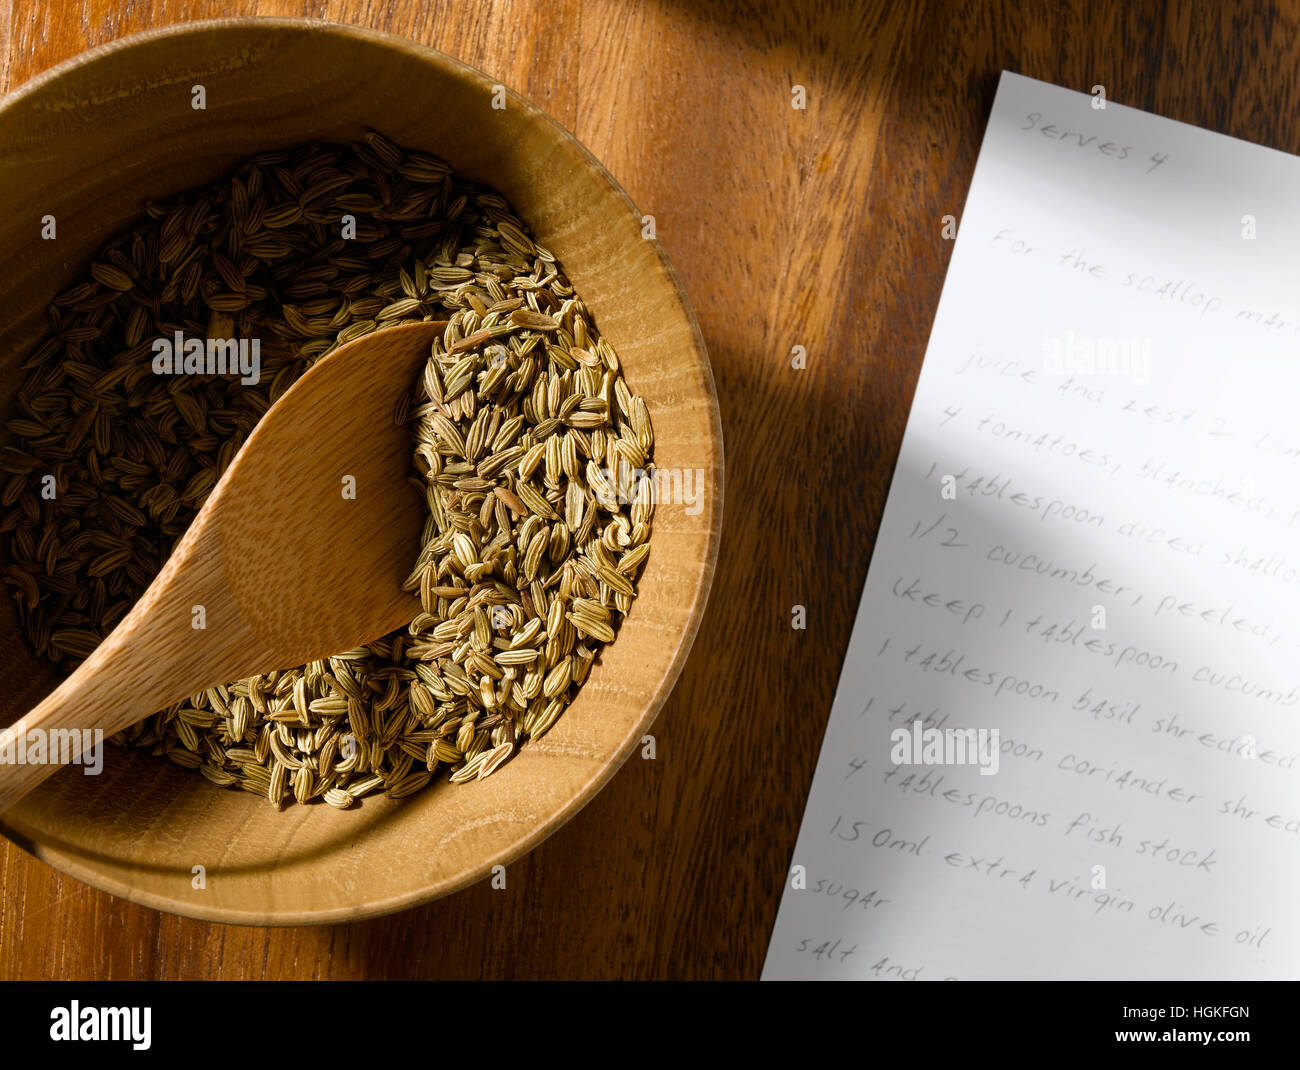 Fennel Seed a wooden background - Stock Image